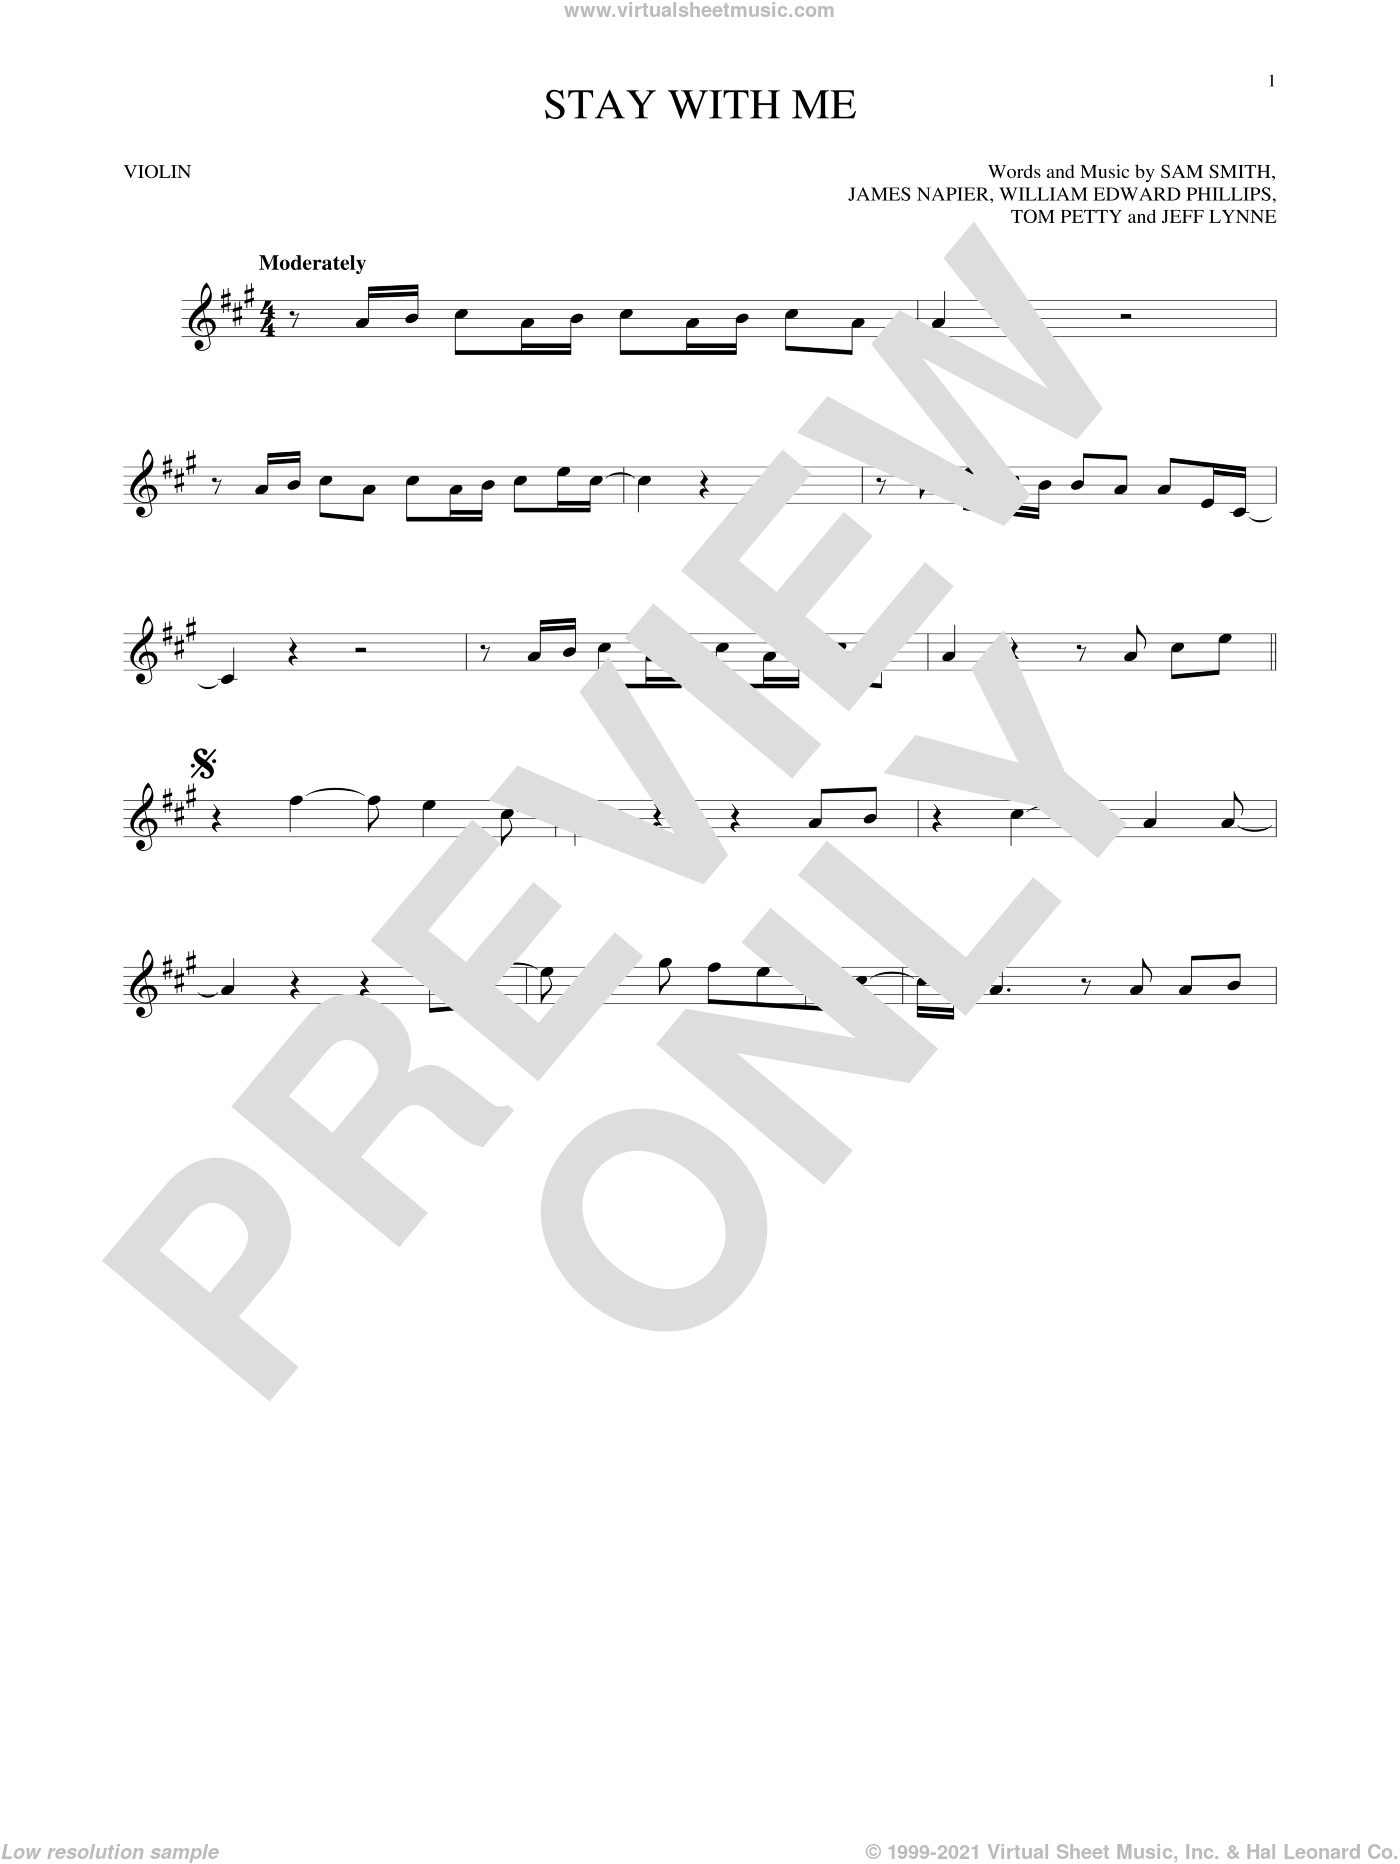 Stay With Me sheet music for violin solo by Sam Smith, James Napier, Jeff Lynne, Tom Petty and William Edward Phillips, intermediate skill level